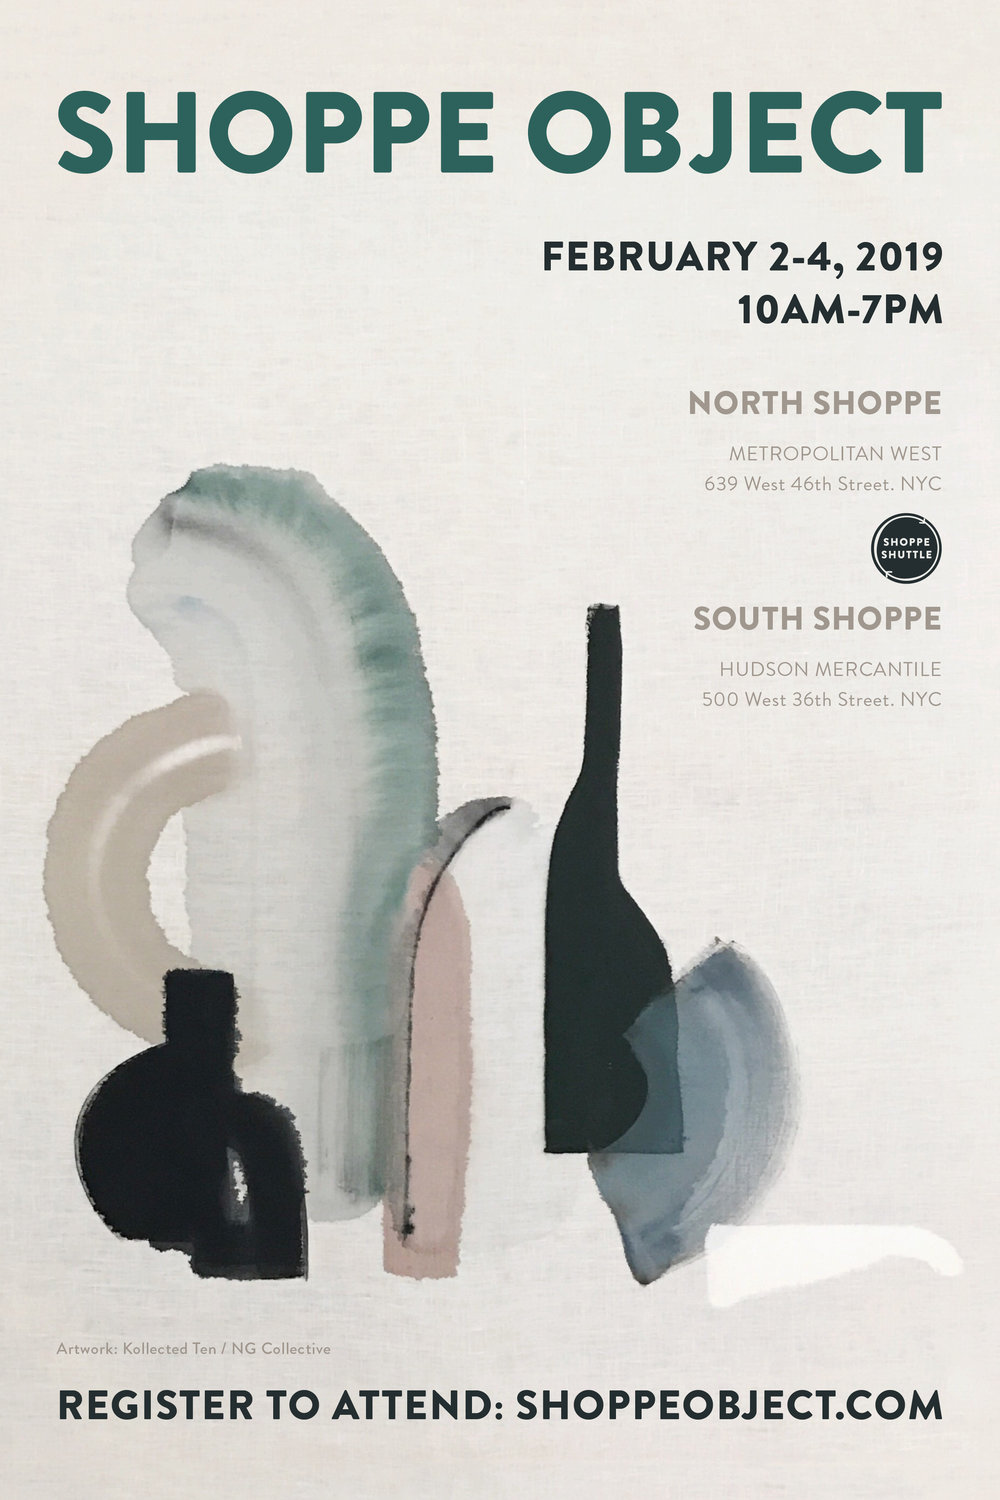 SHOPPEOBJECT_Invitation_February 2019.jpg